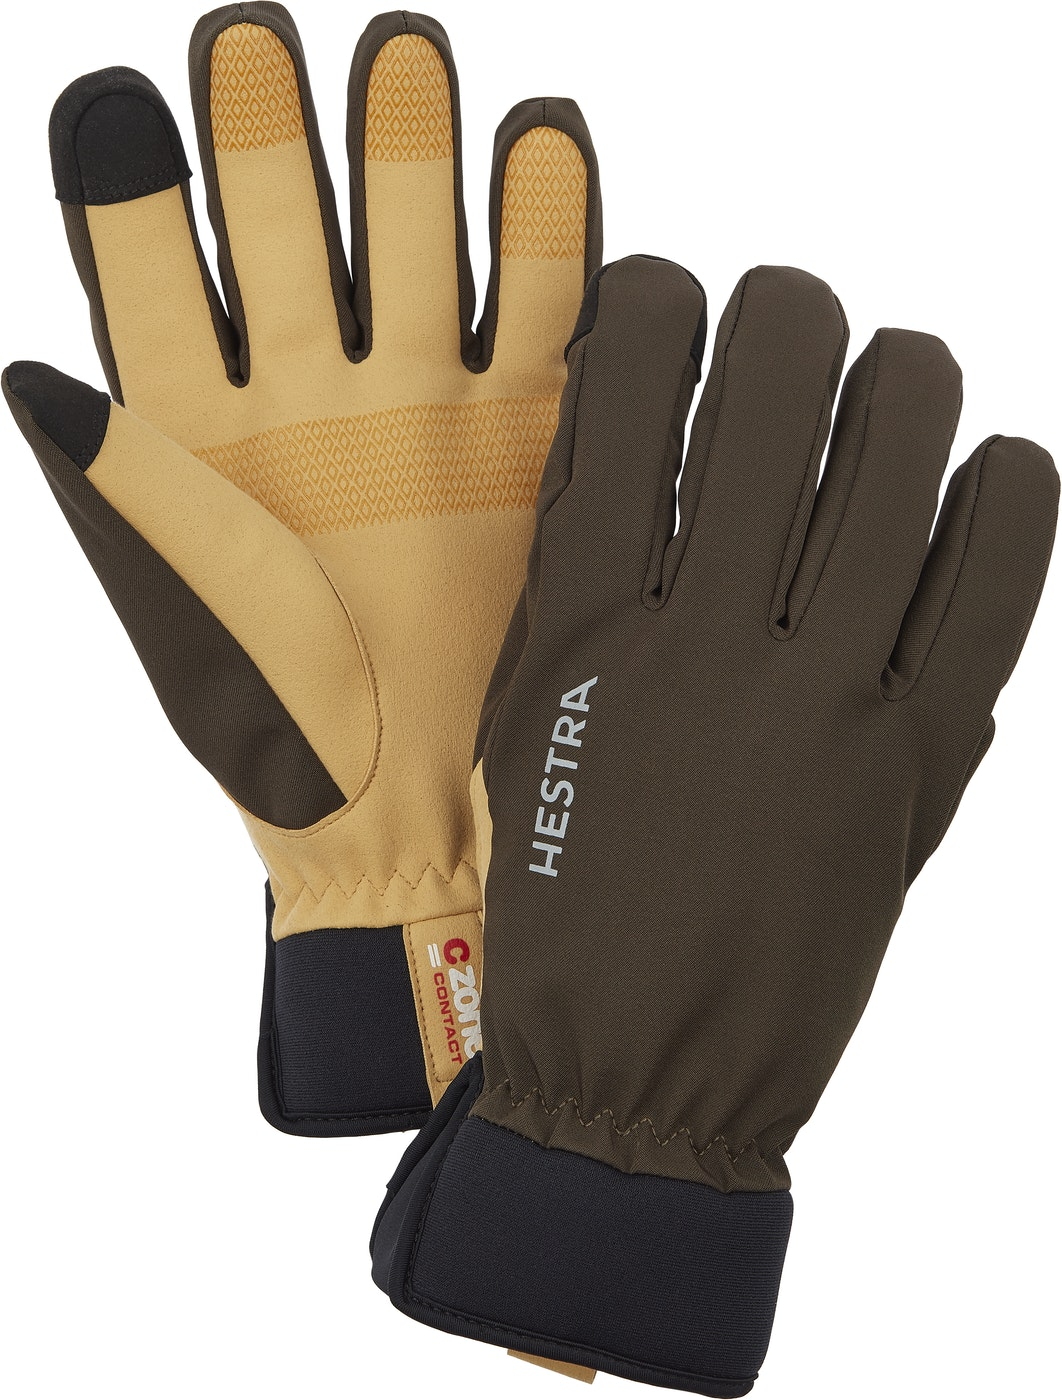 Product image for 32110 CZone Contact Glove